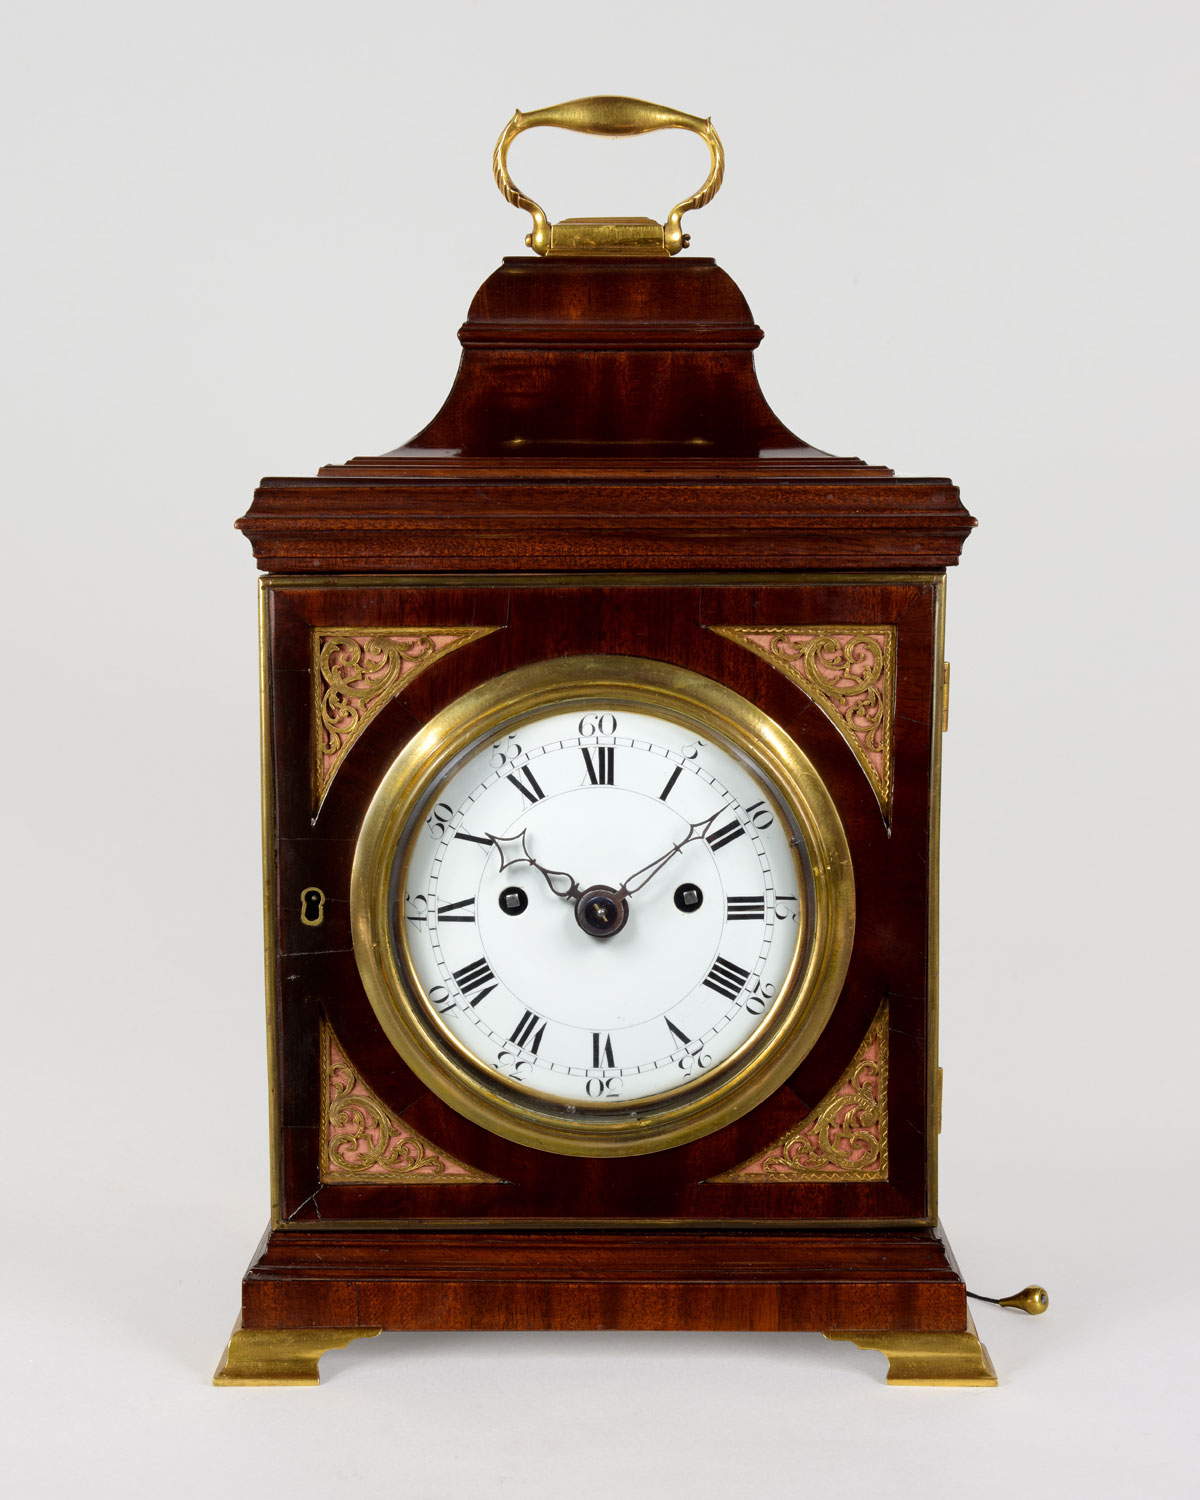 THOMAS WAGSTAFFE. A fine late George III period mahogany bracket clock